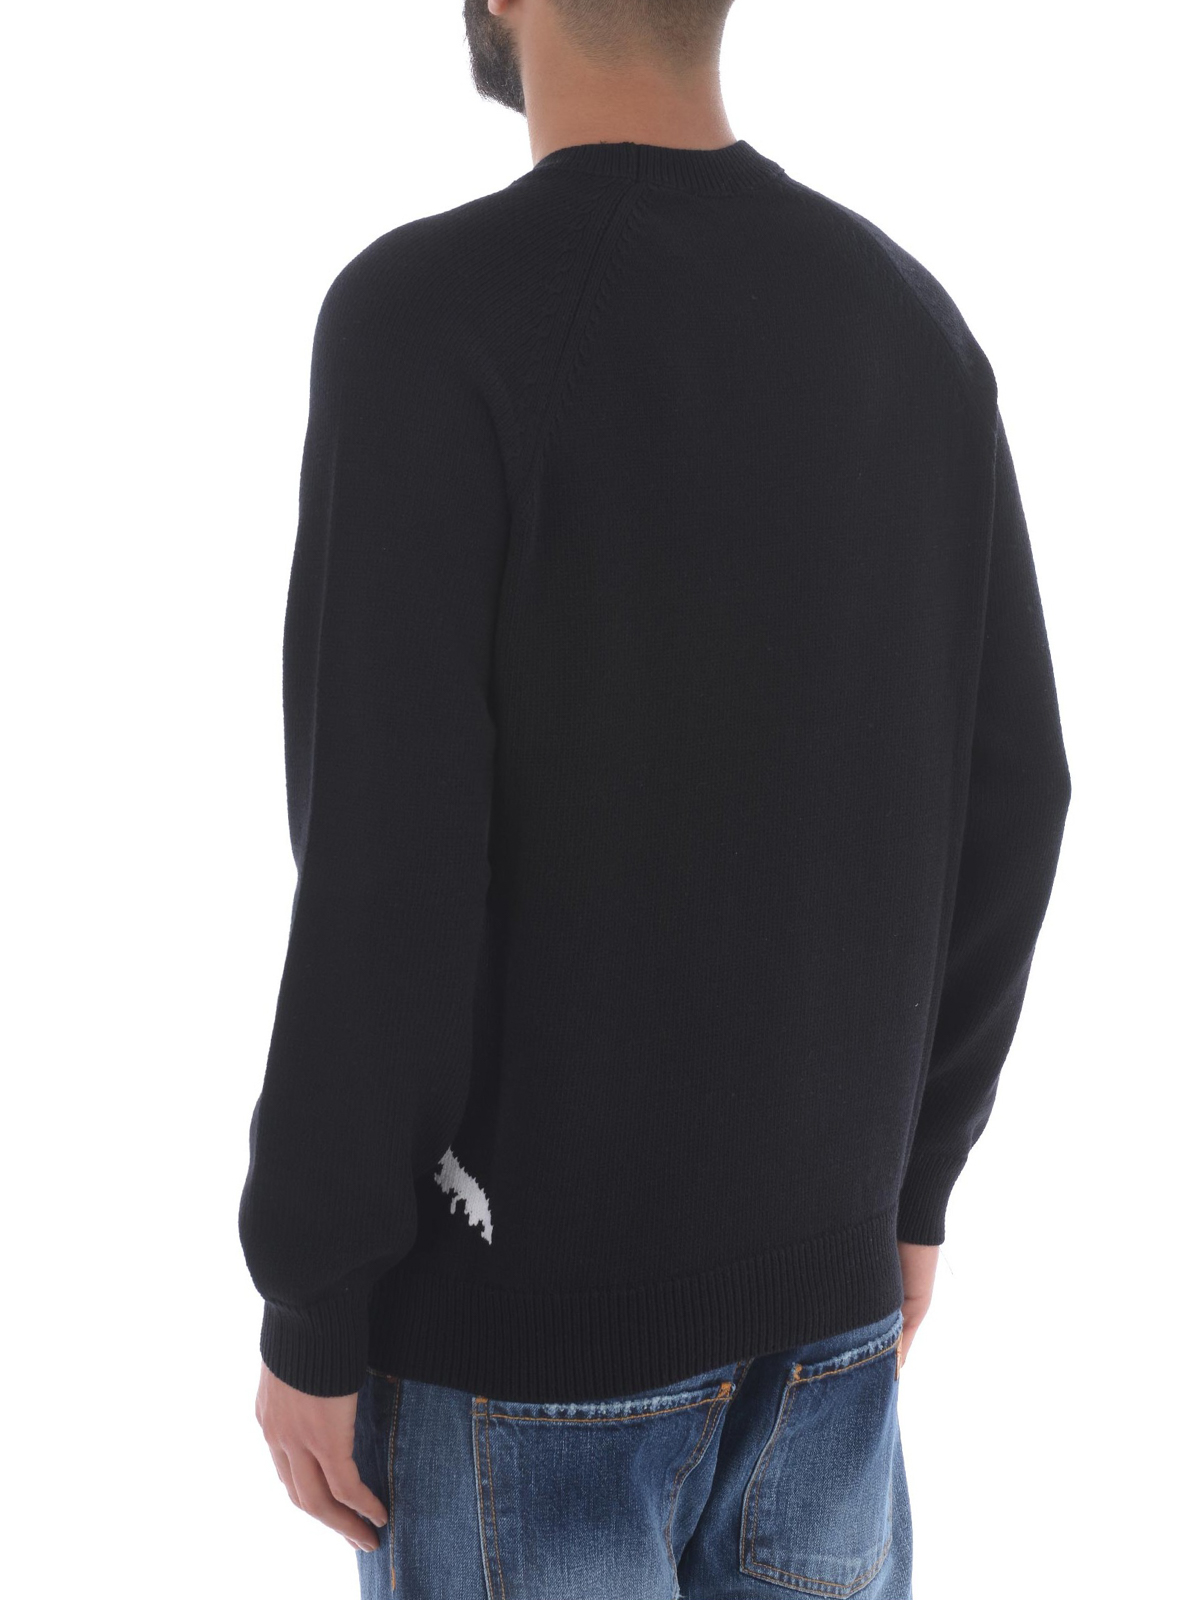 0434d796745 Kenzo - Pull Col Rond - Kenzo Signature - Pull col rond ...